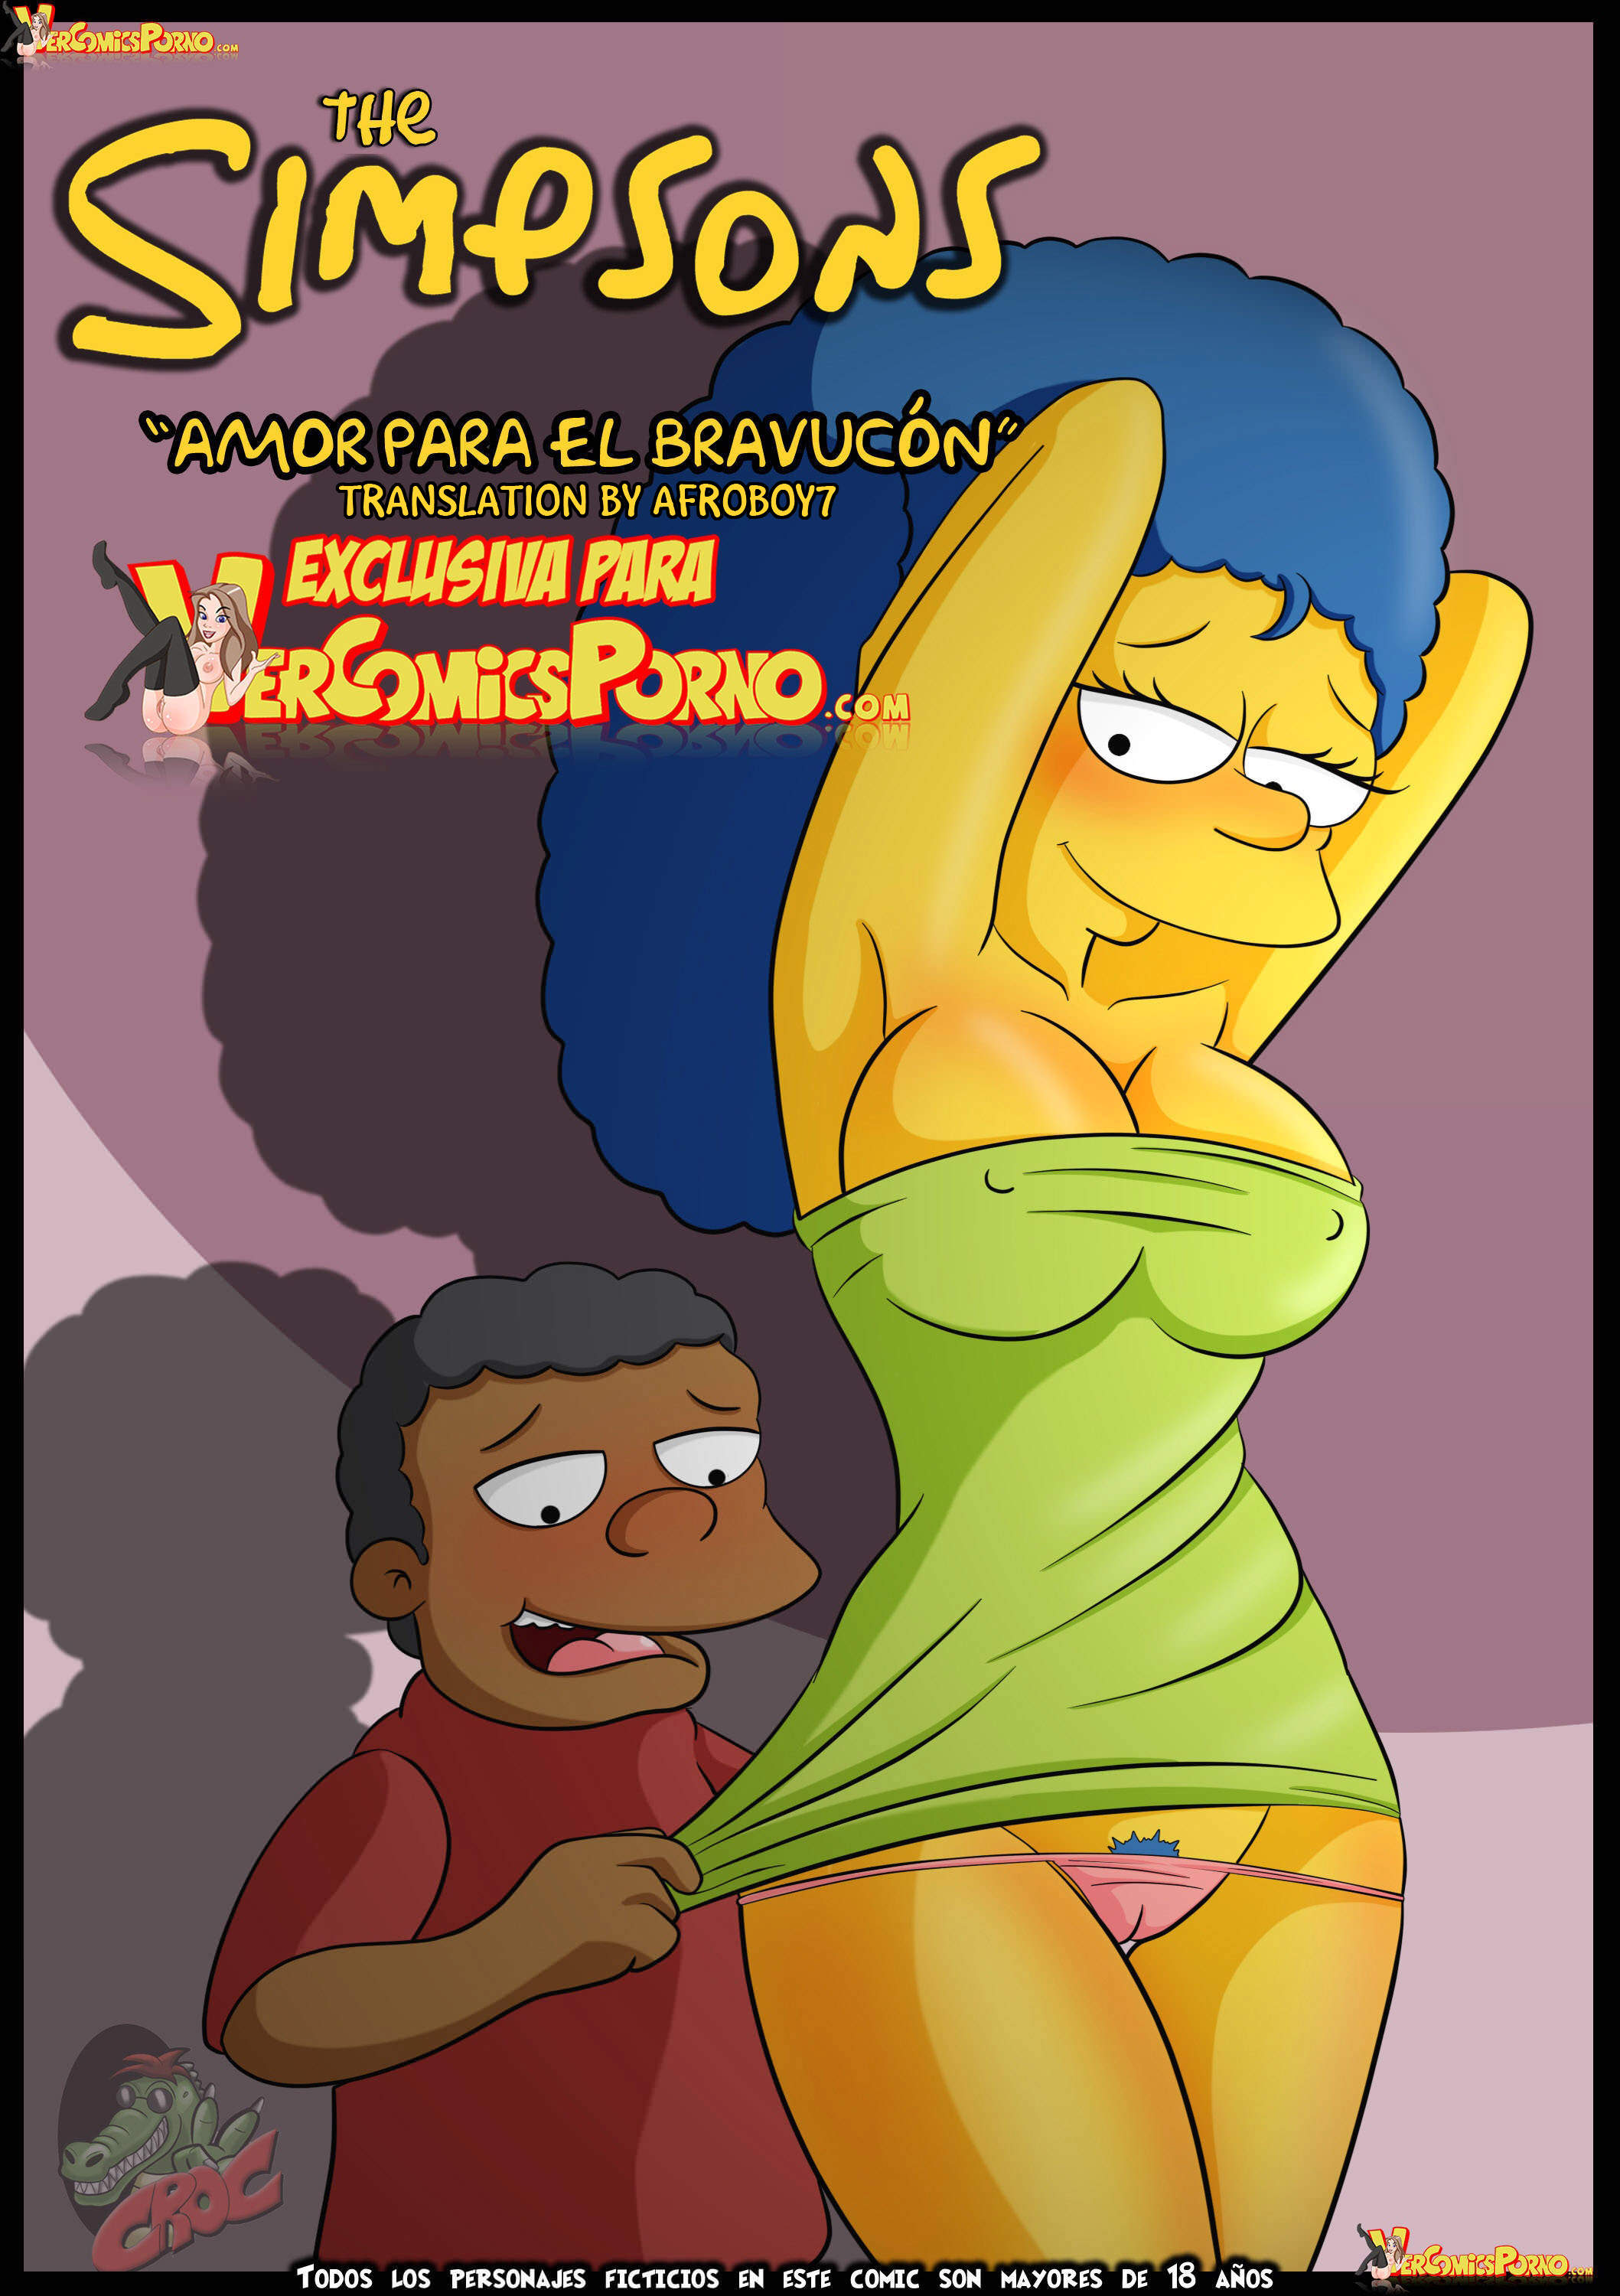 Amor Con Porno the simpsons: love for the bully - porn comics, simpsons